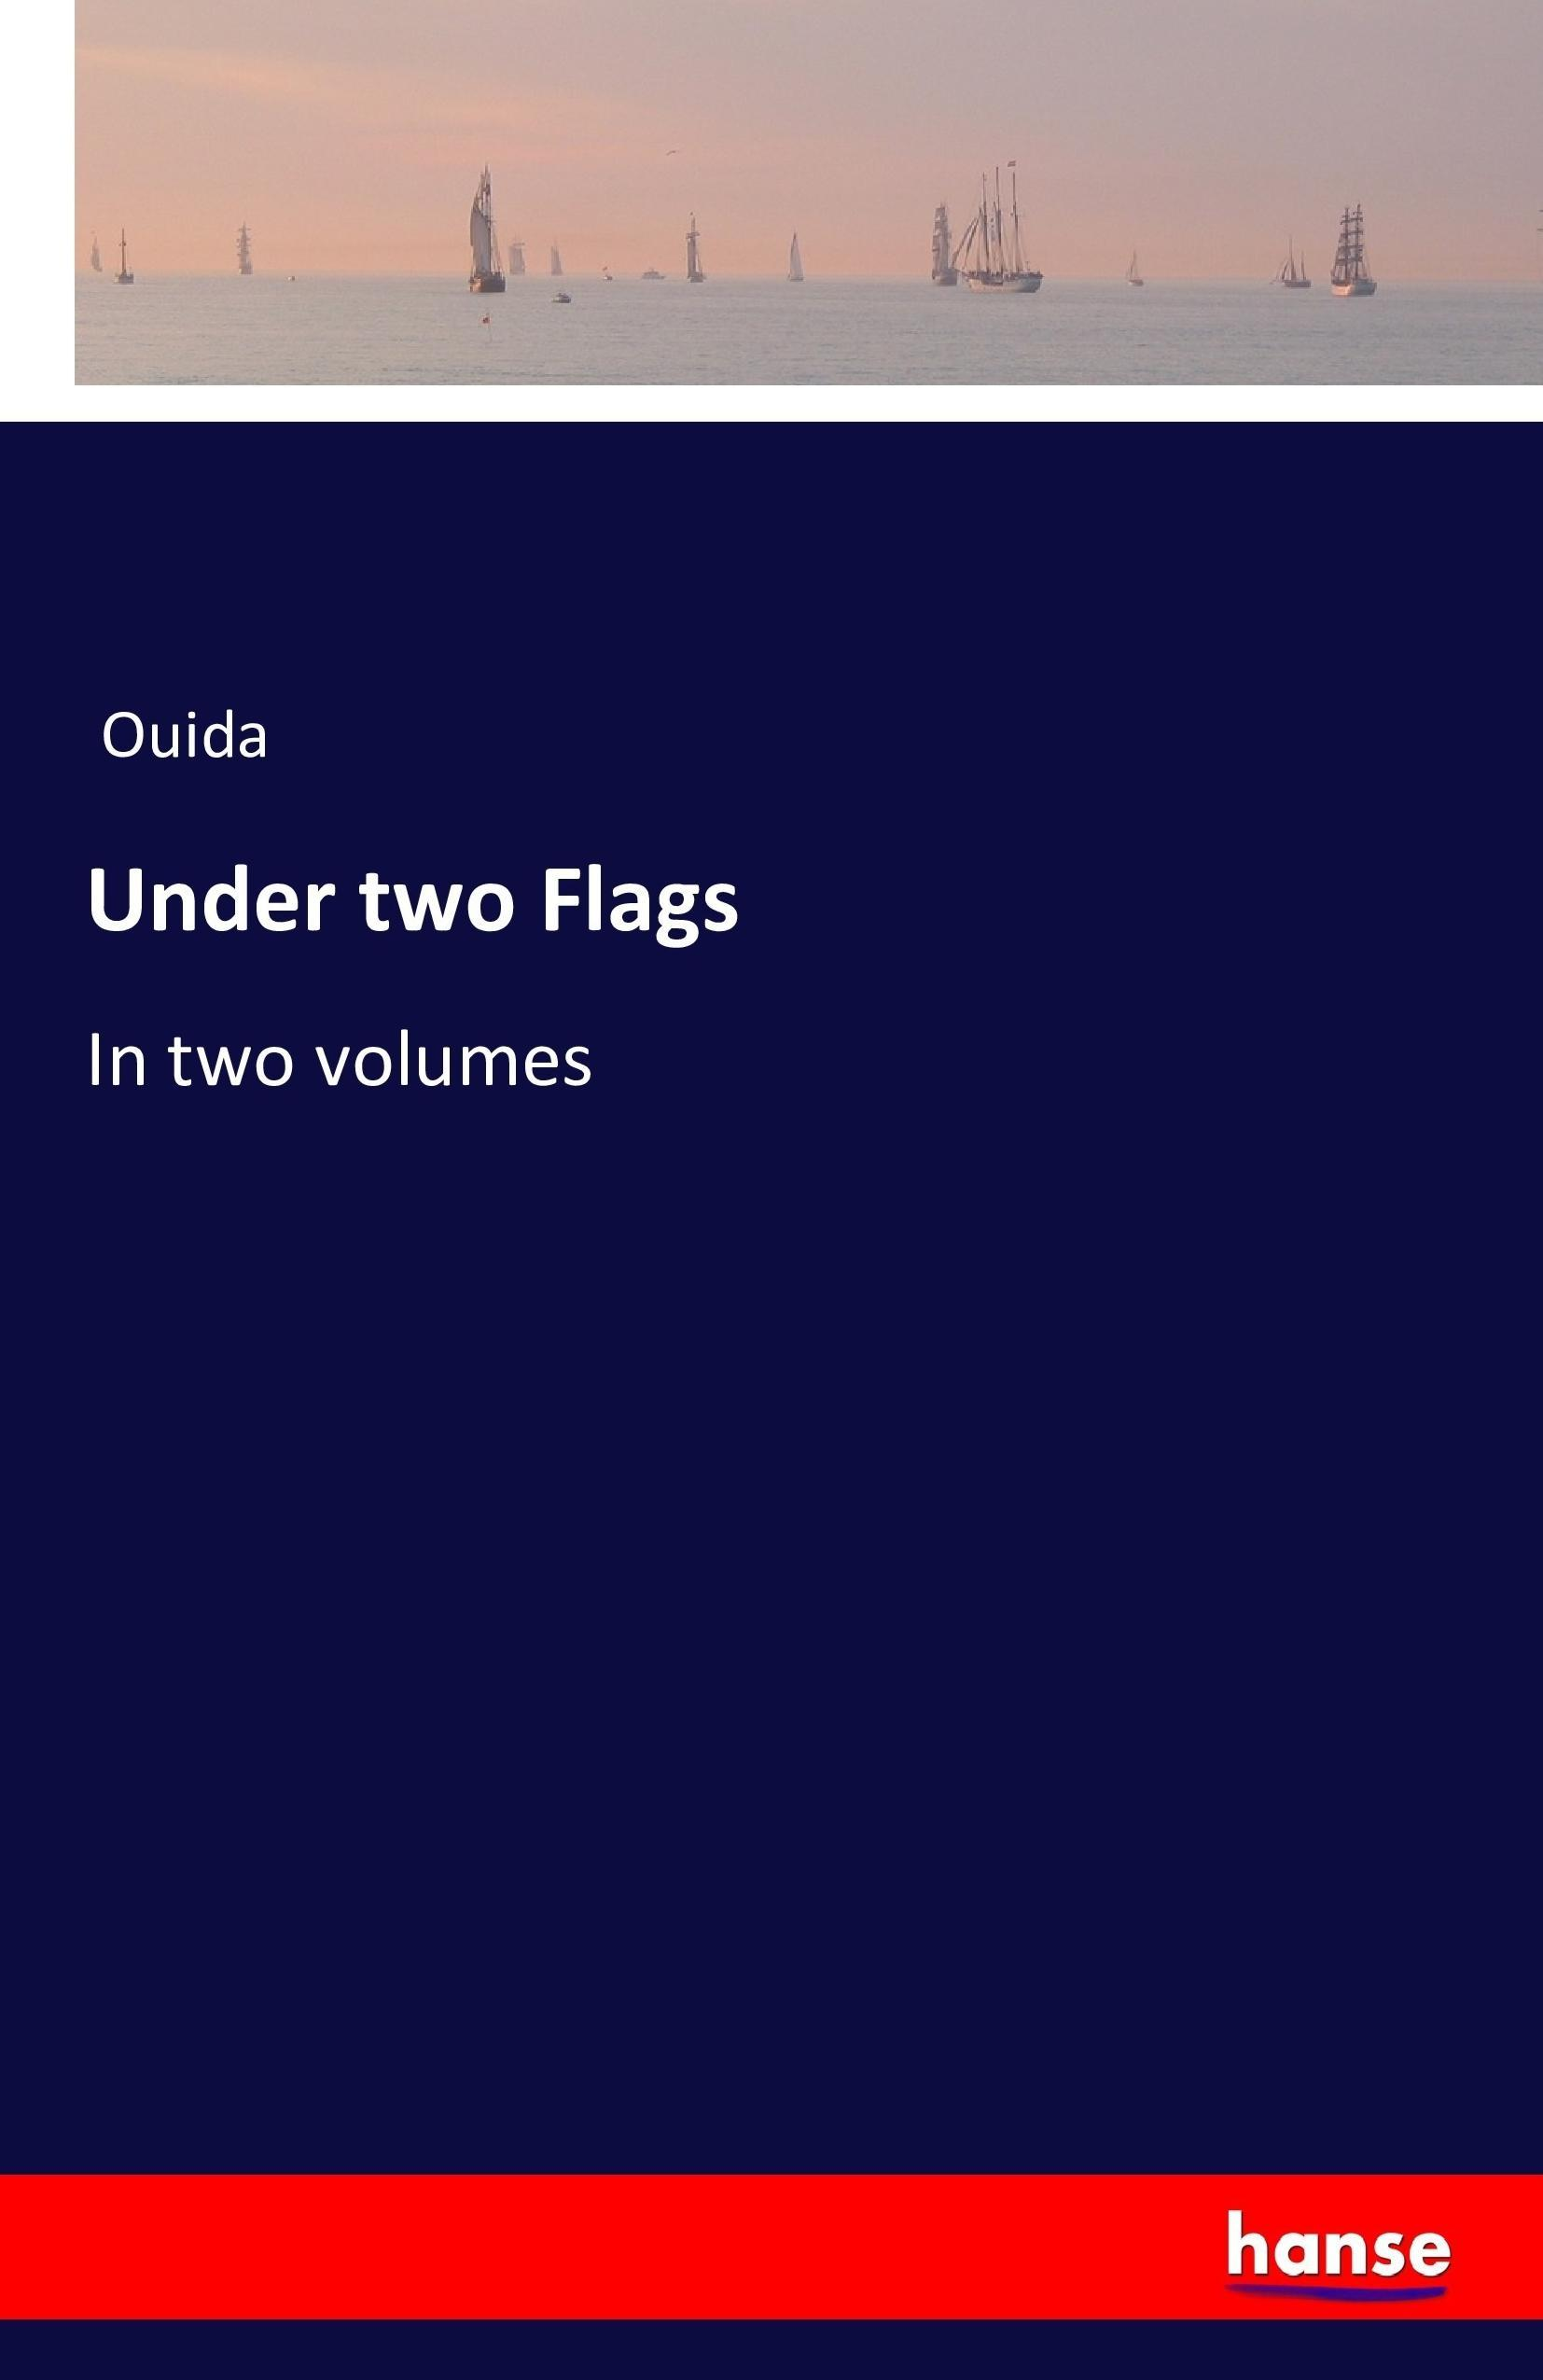 Ouida / Under two Flags 9783741179198